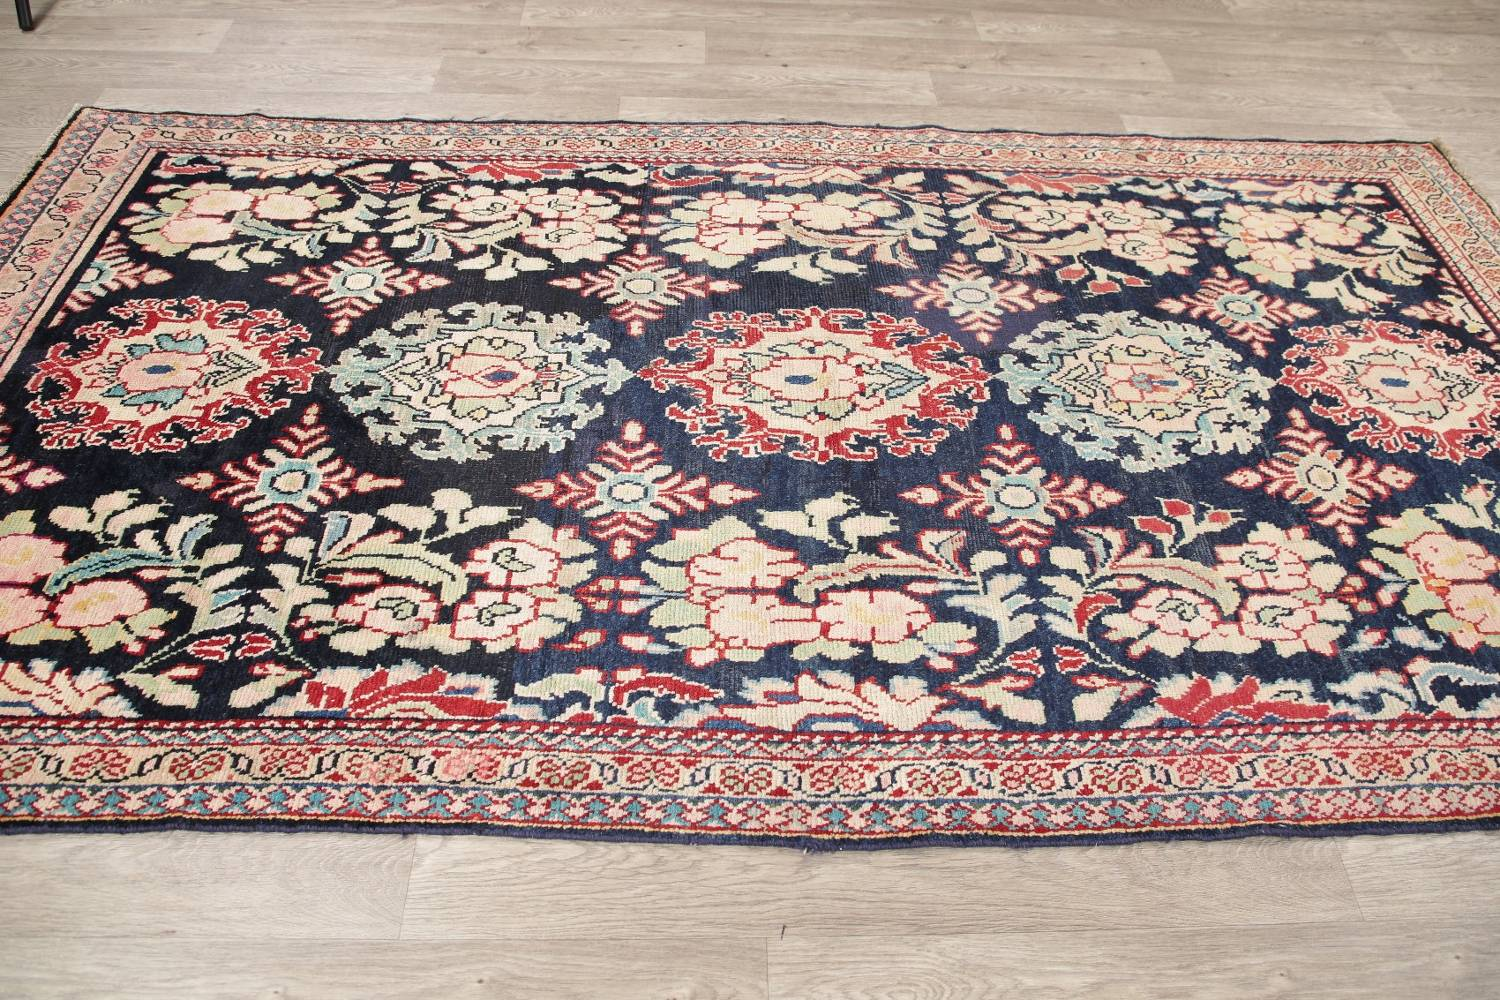 Antique Navy Blue Sultanabad Persian Runner Rug 5x9 image 15